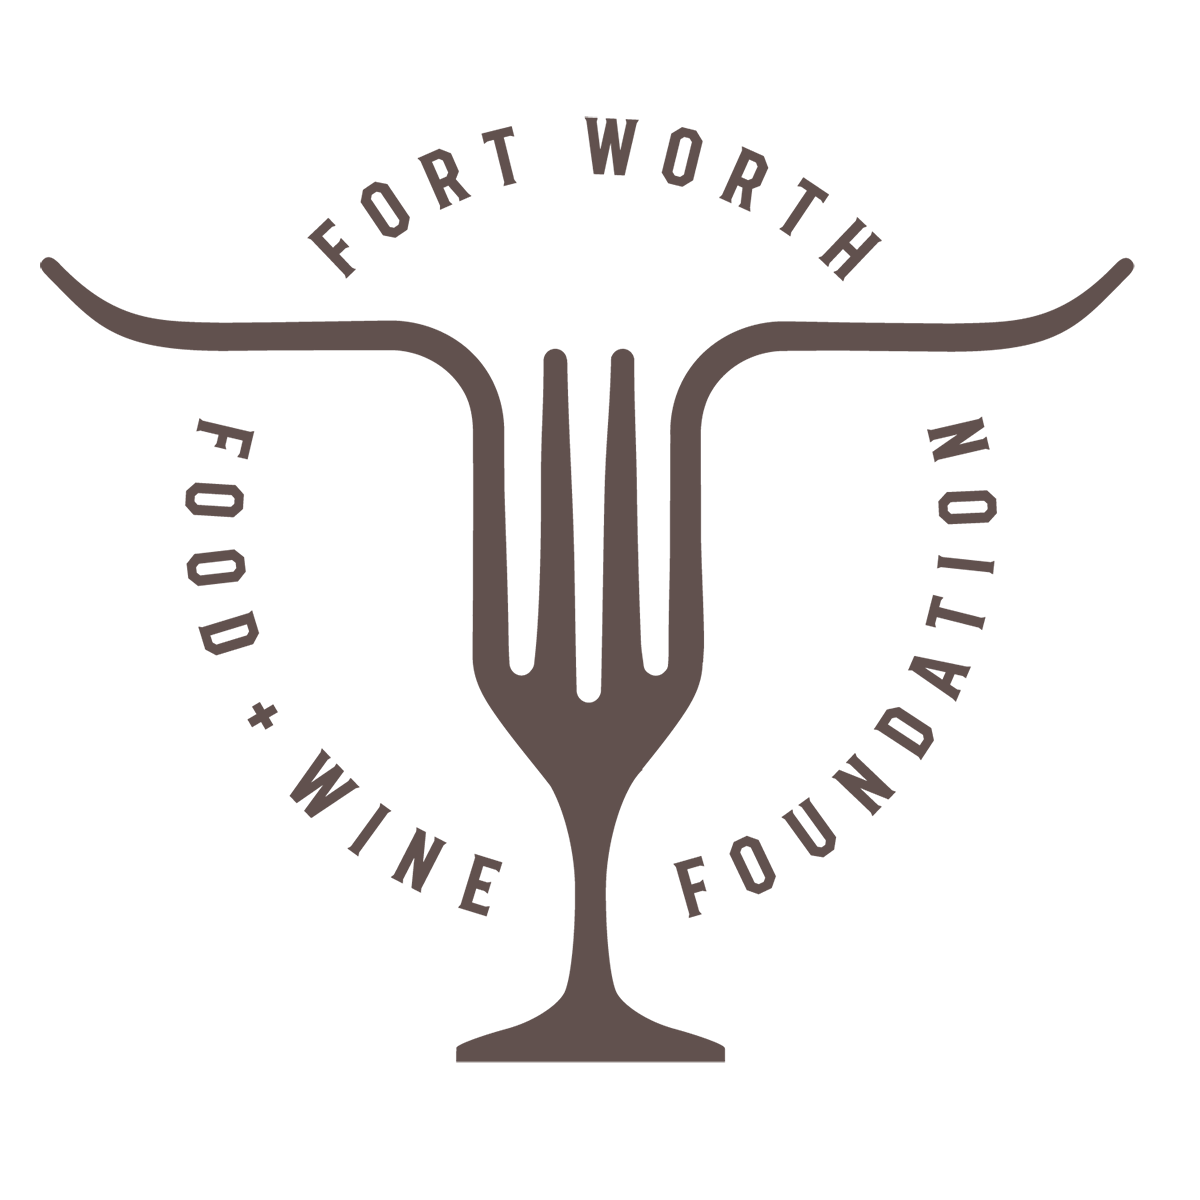 fwfwf-foundation.png